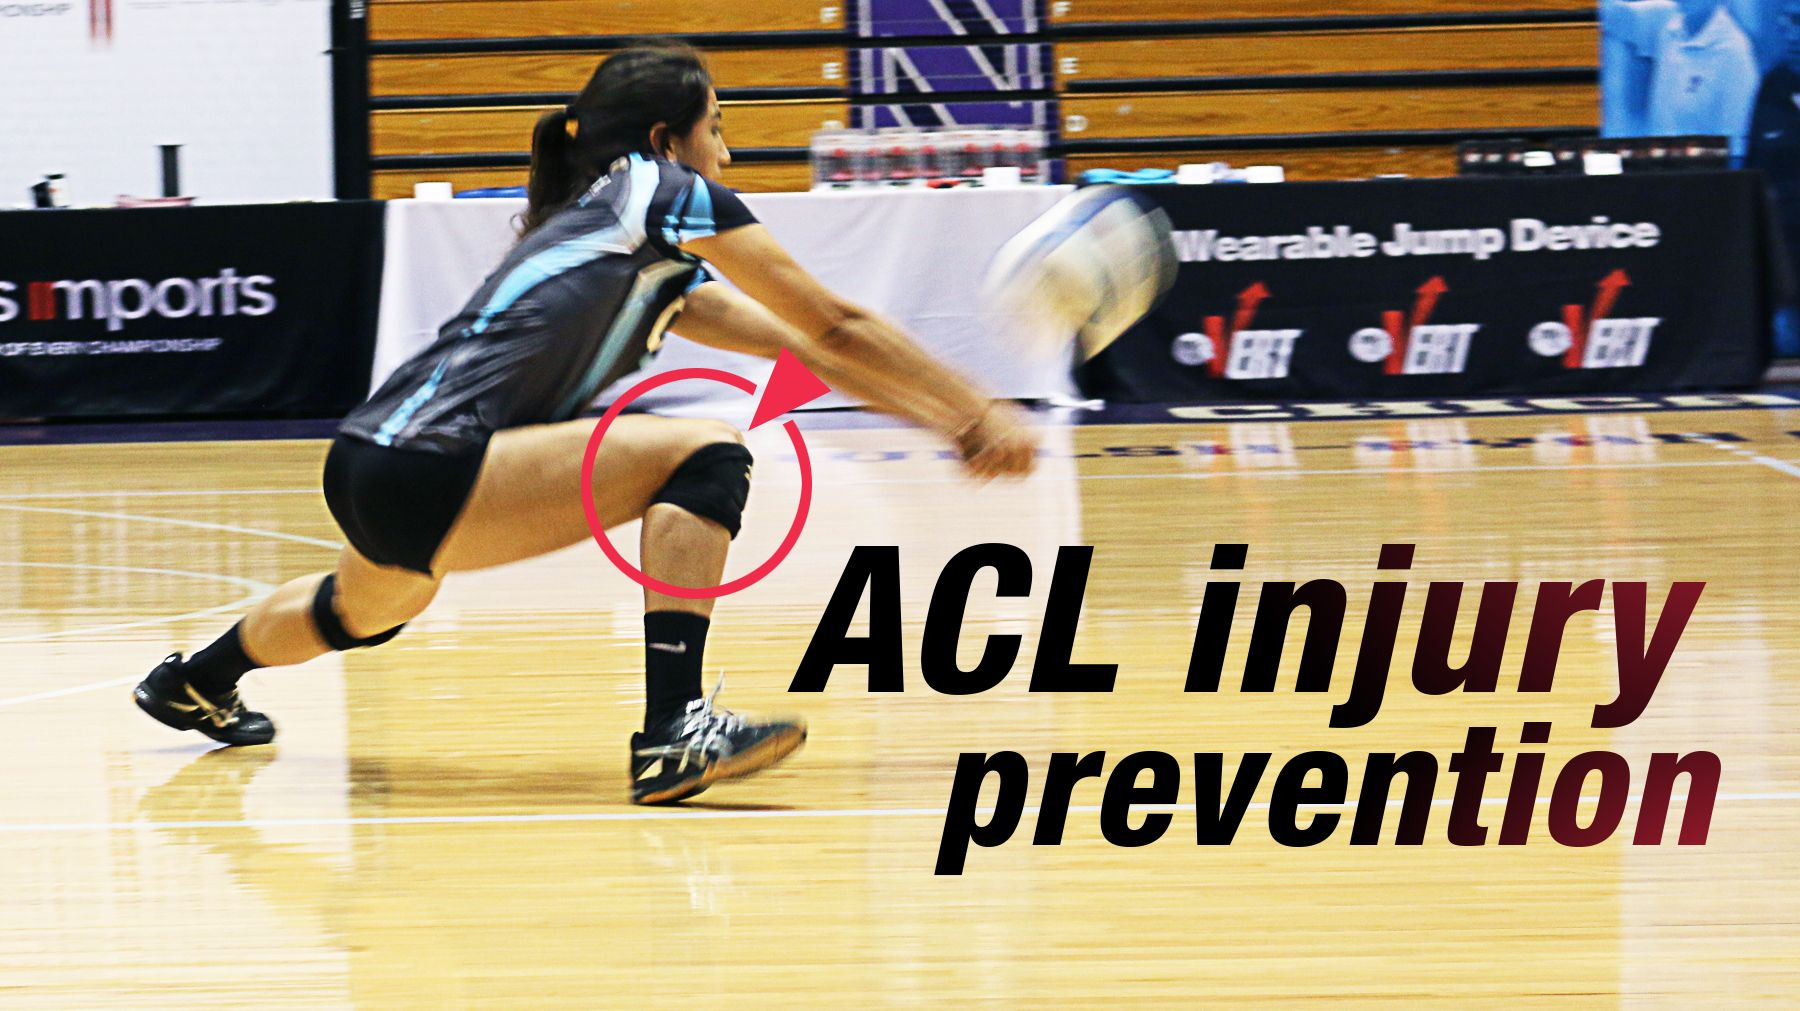 Exercise Physiologist Don Moxley On Acl Injury Prevention The Art Of Coaching Volleyball Injury Prevention Daily Exercise Routines Workout Programs